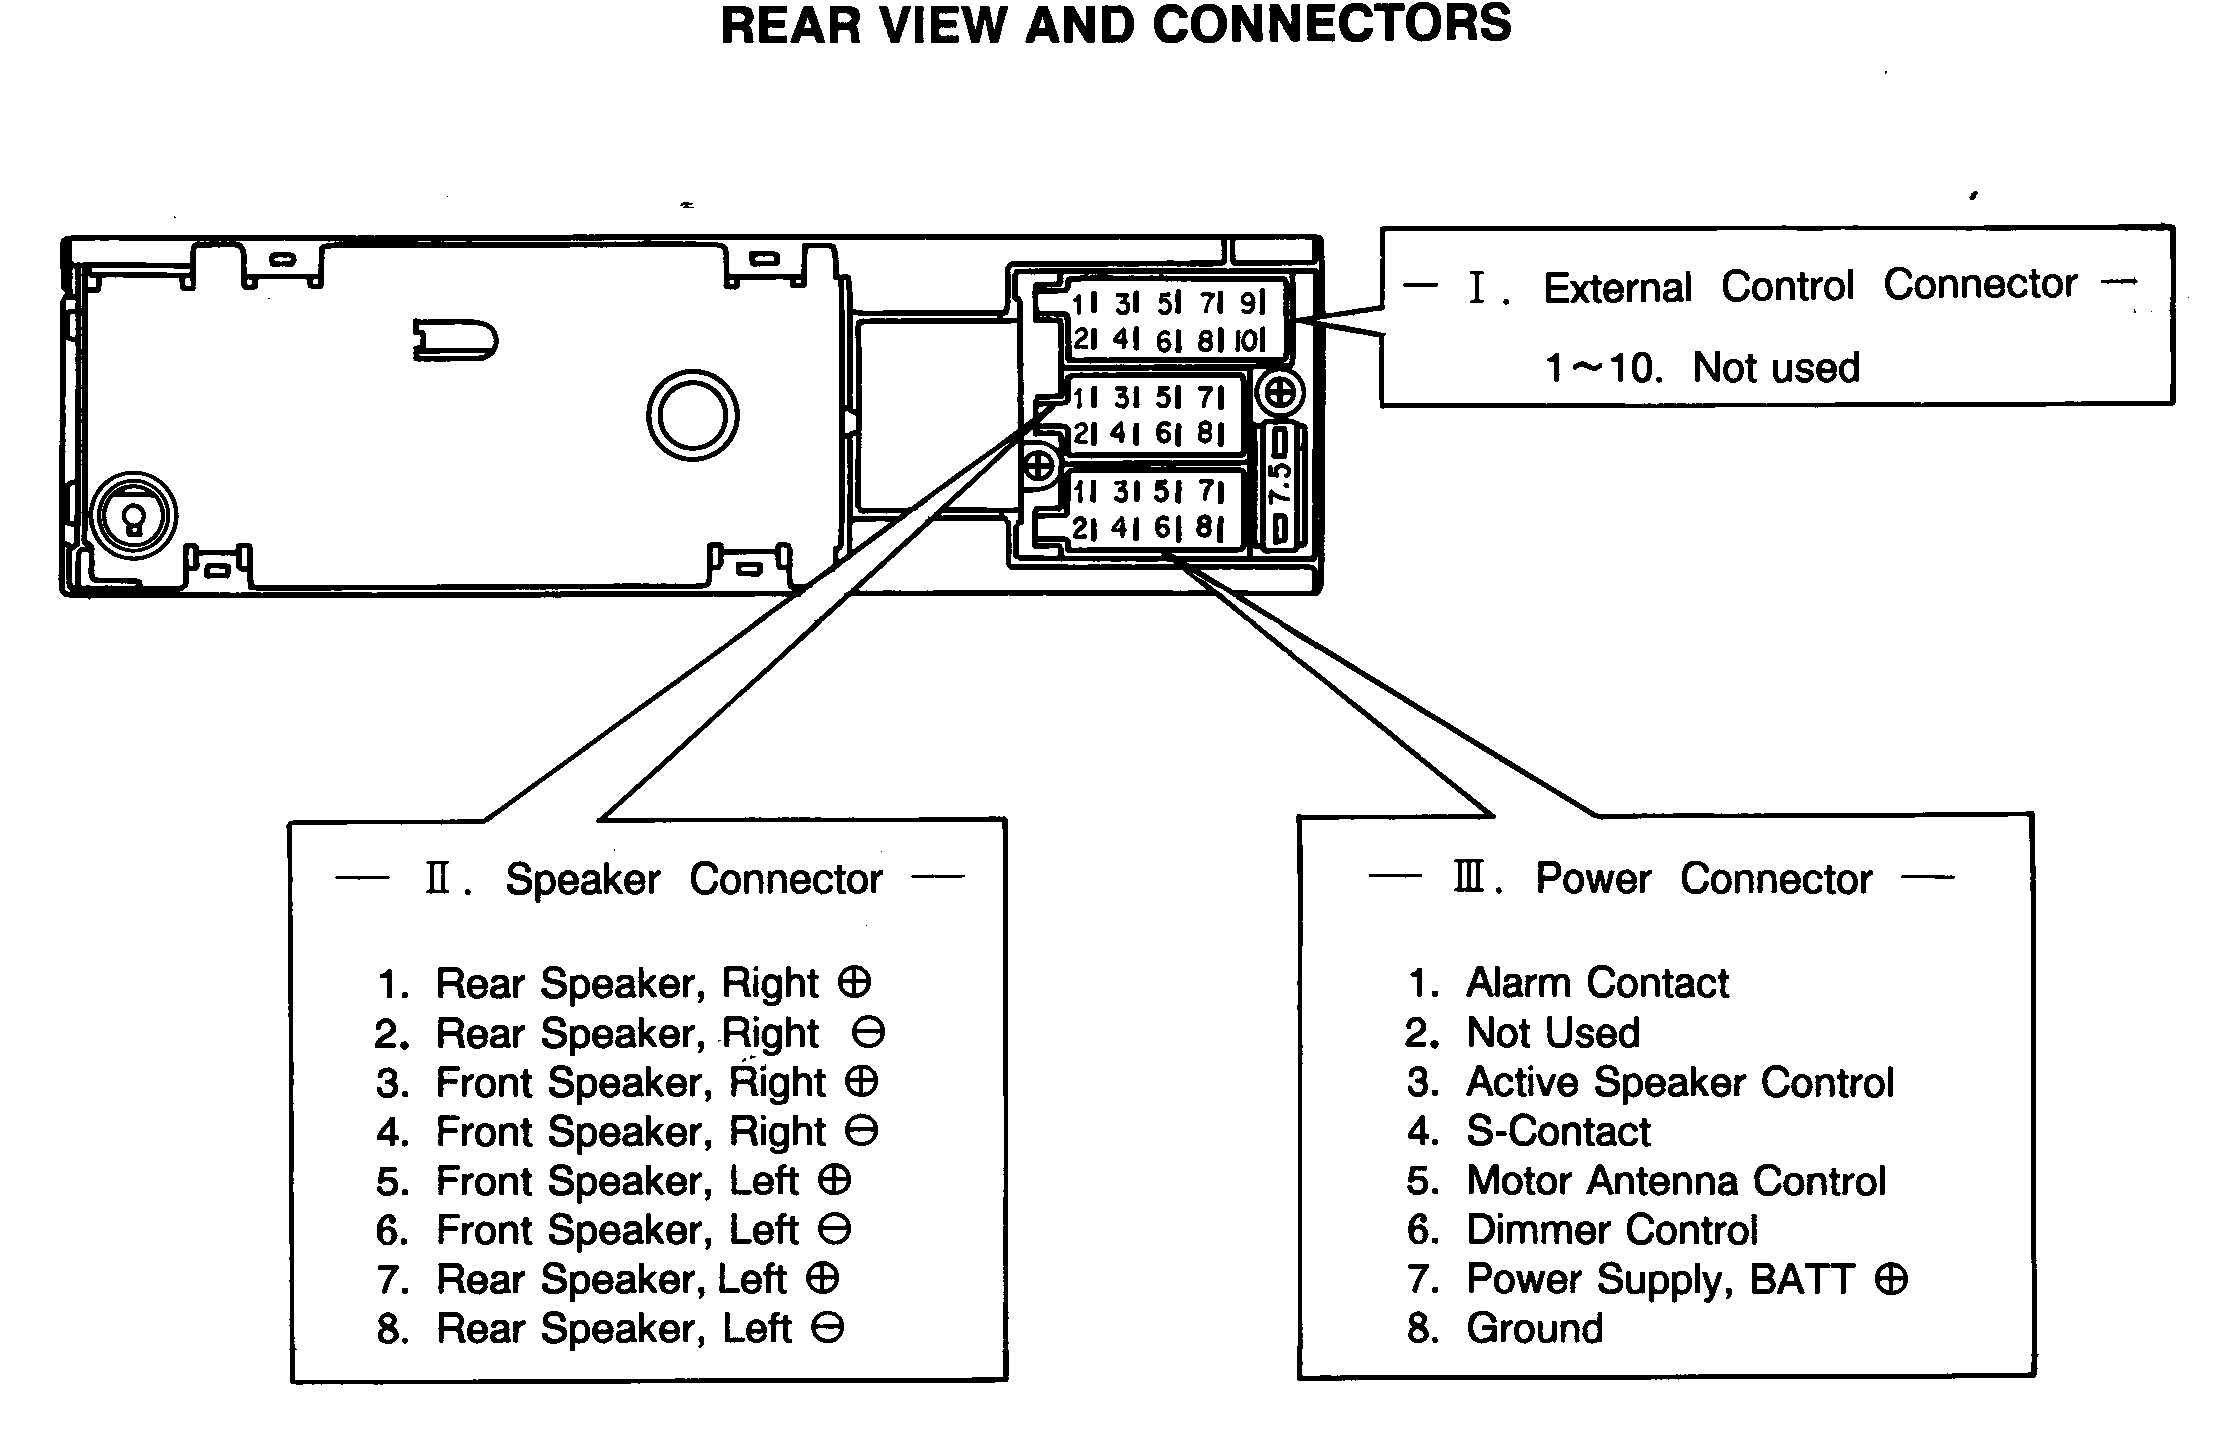 Car Stereo Wire Diagram Honda Stereo Wiring Diagram Blurts Of Car Stereo Wire Diagram